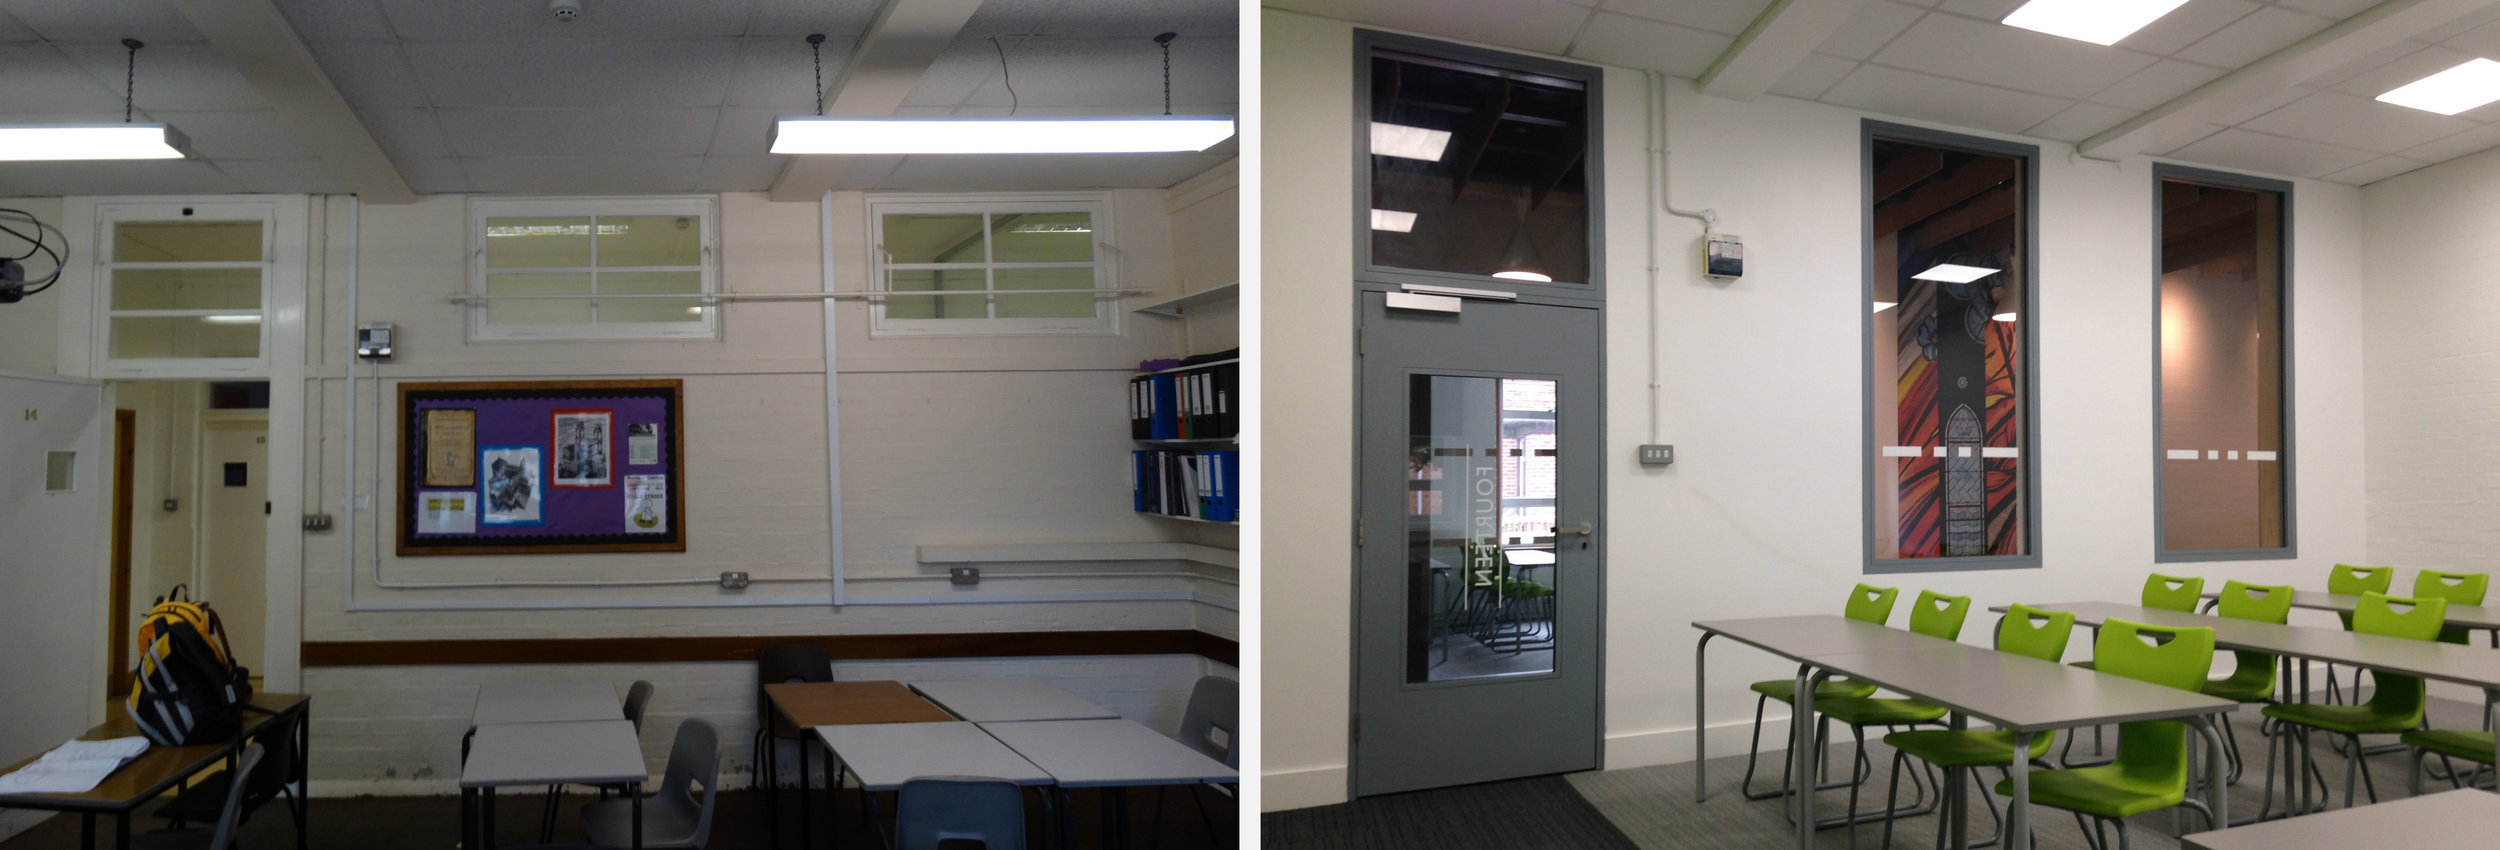 comparison image, showing before and after images of a classroom in the Hamilton Building